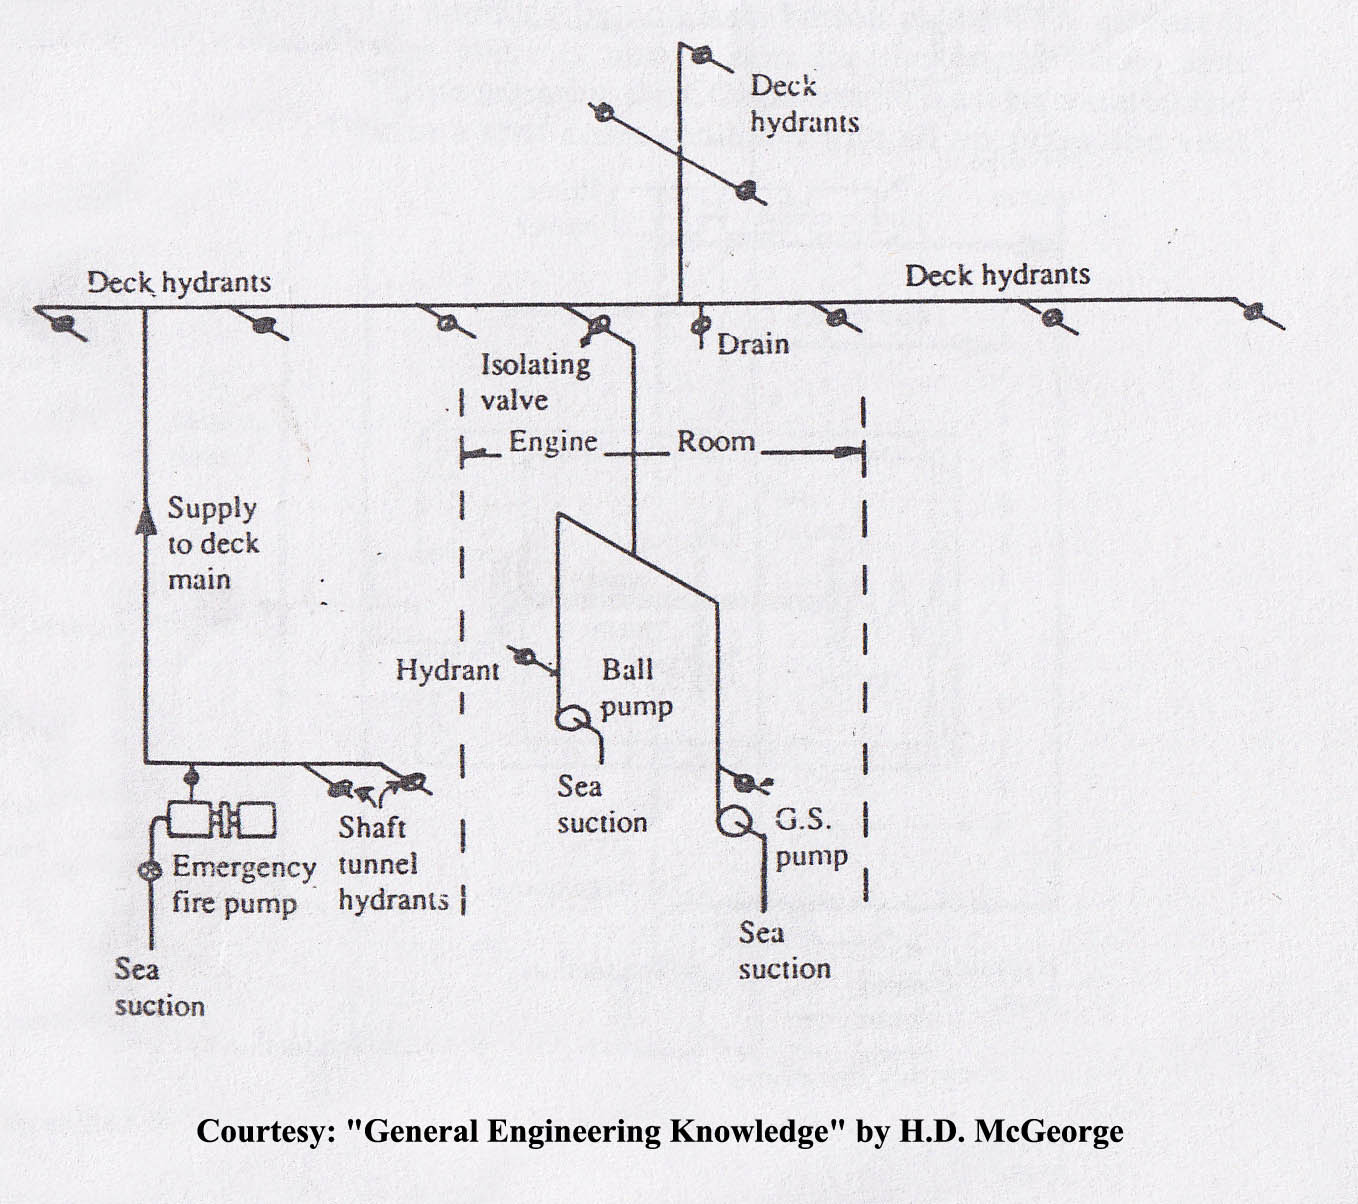 Basic Fire Alarm System Diagram Fire Main System Onboard Ships For Fire Fighting